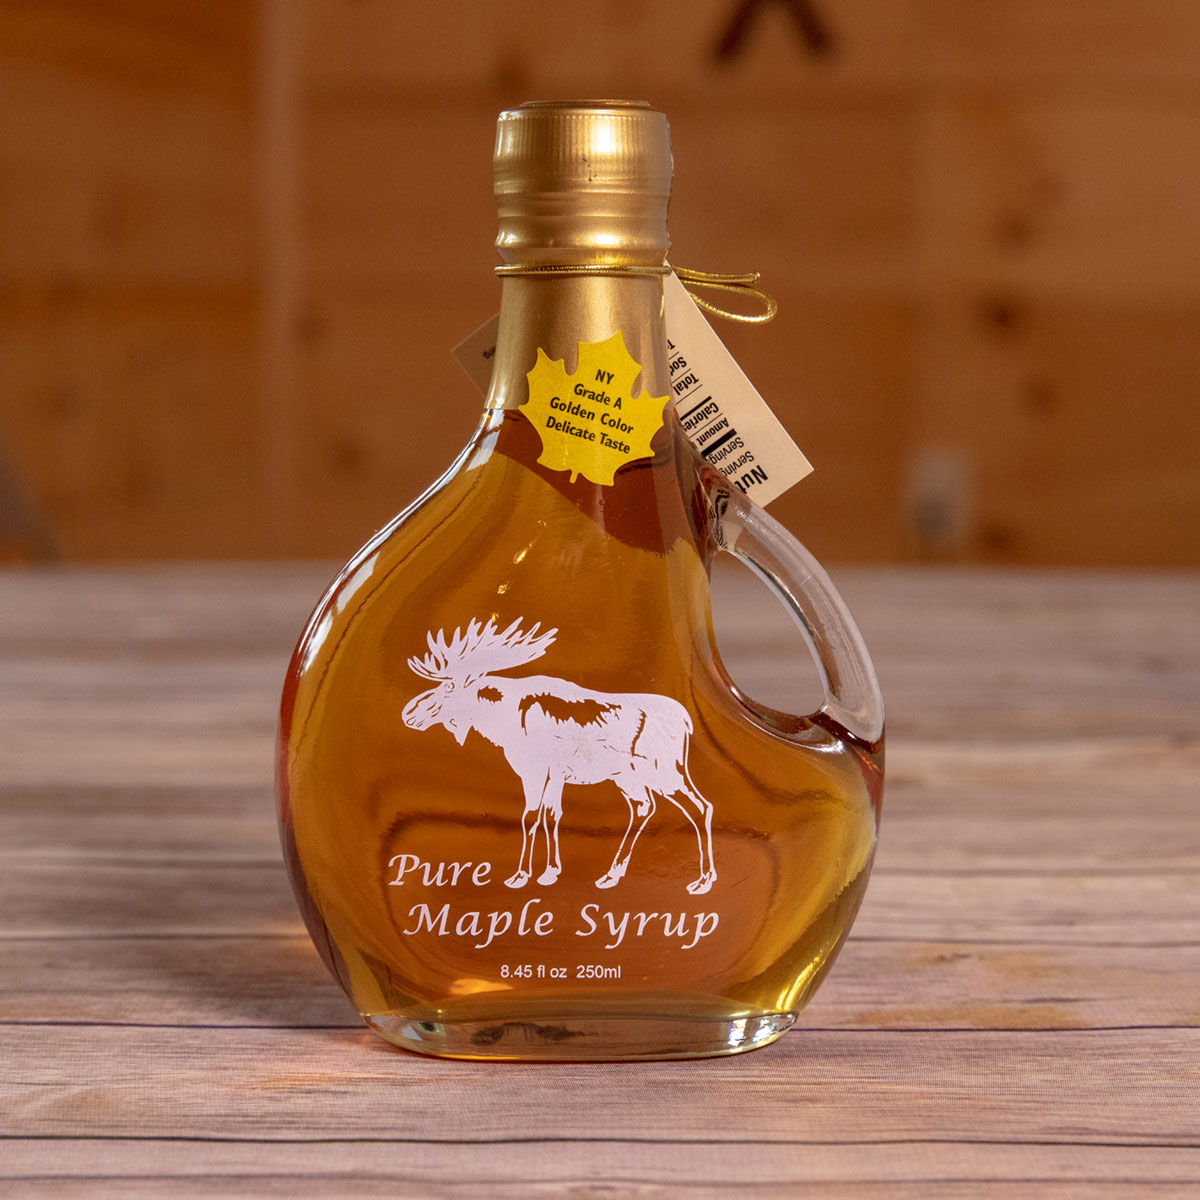 Bechard's PURE Maple Syrup Decorative Glass Jar 8.5 oz - Moose Basquaise